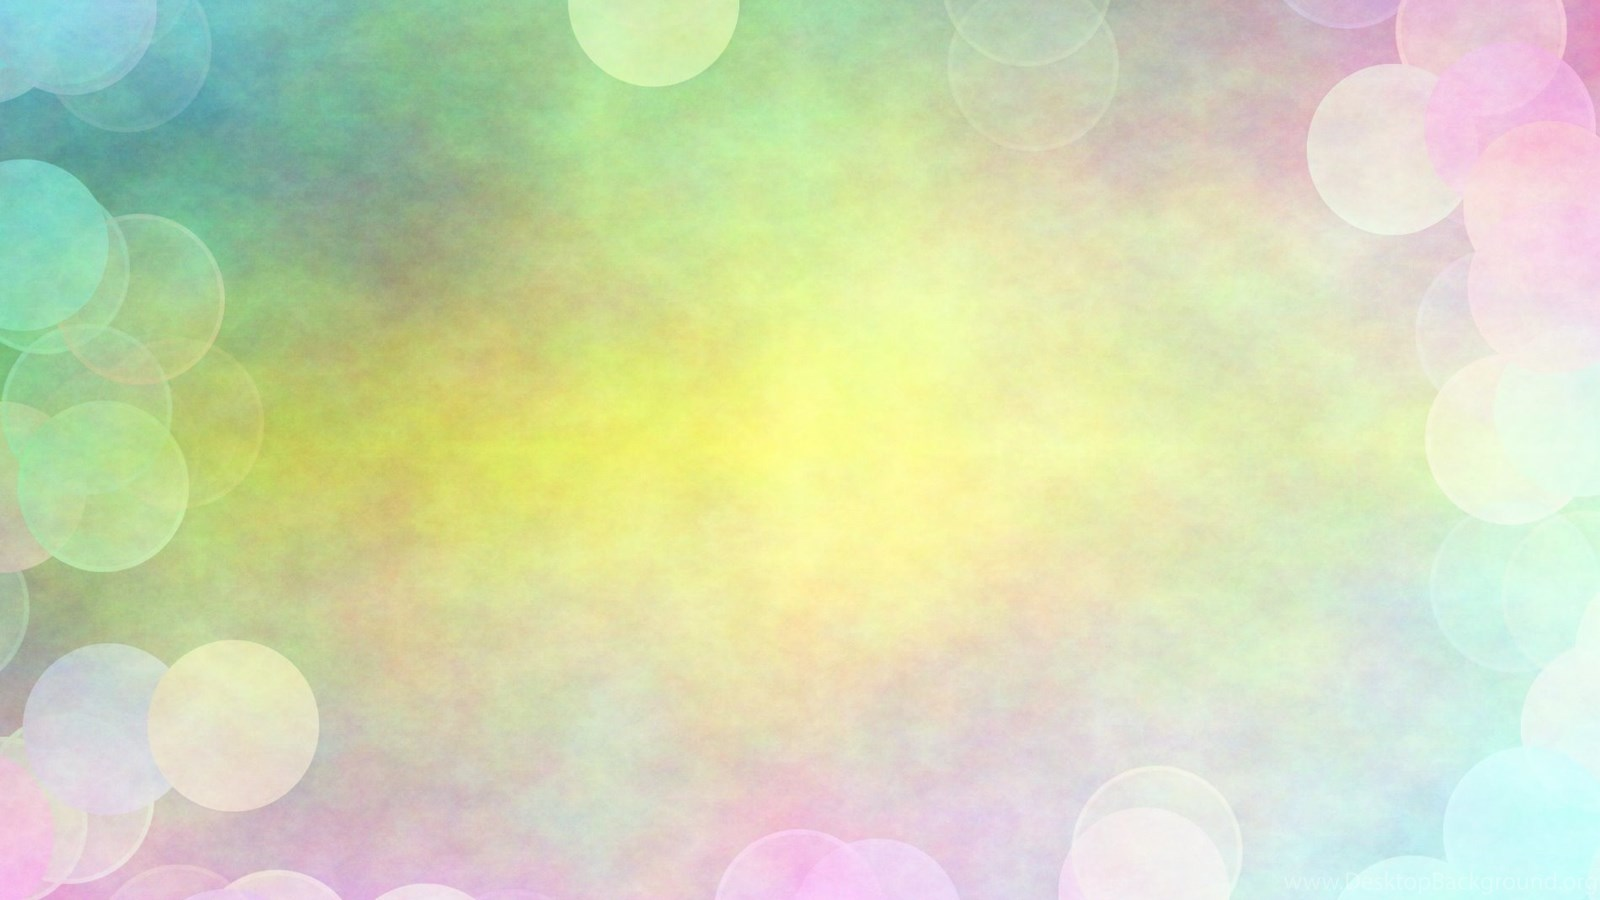 Pastel rainbow wallpapers hd resolution for desktop desktop background - Pastel background hd ...